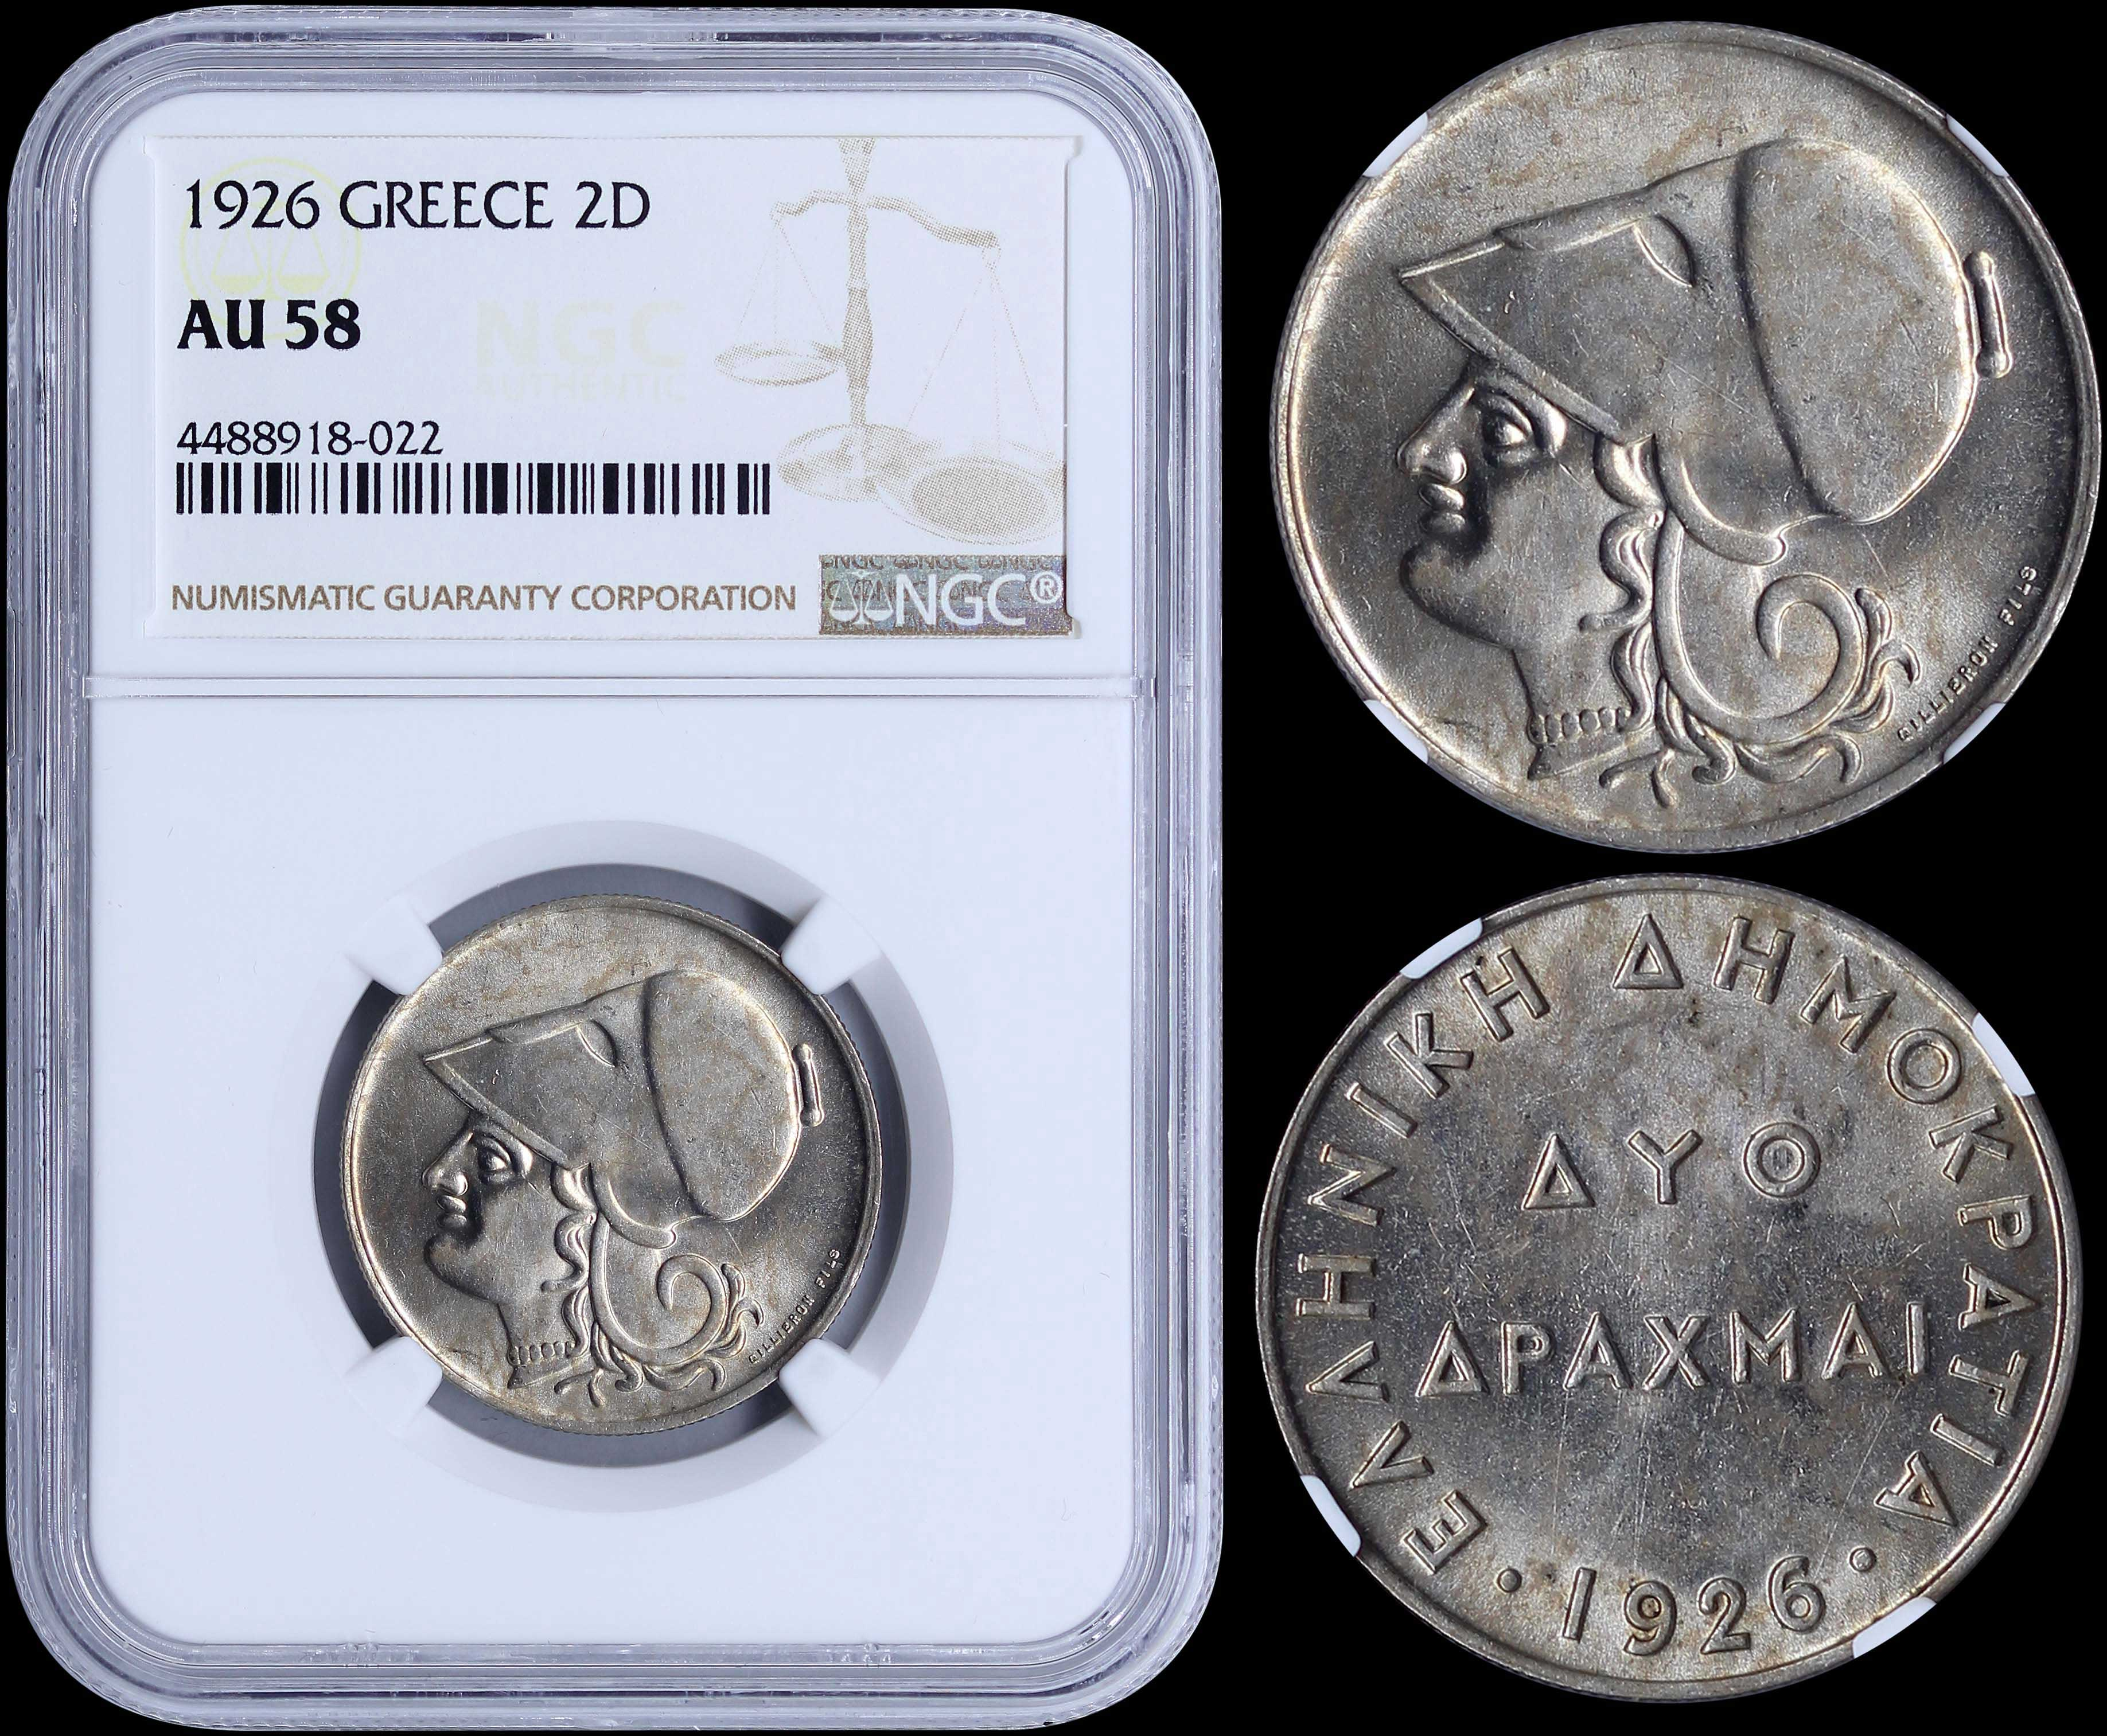 Lot 8160 - -  COINS & TOKENS 1924-1935 greek republic -  A. Karamitsos Public & Live Bid Auction 644 Coins, Medals & Banknotes